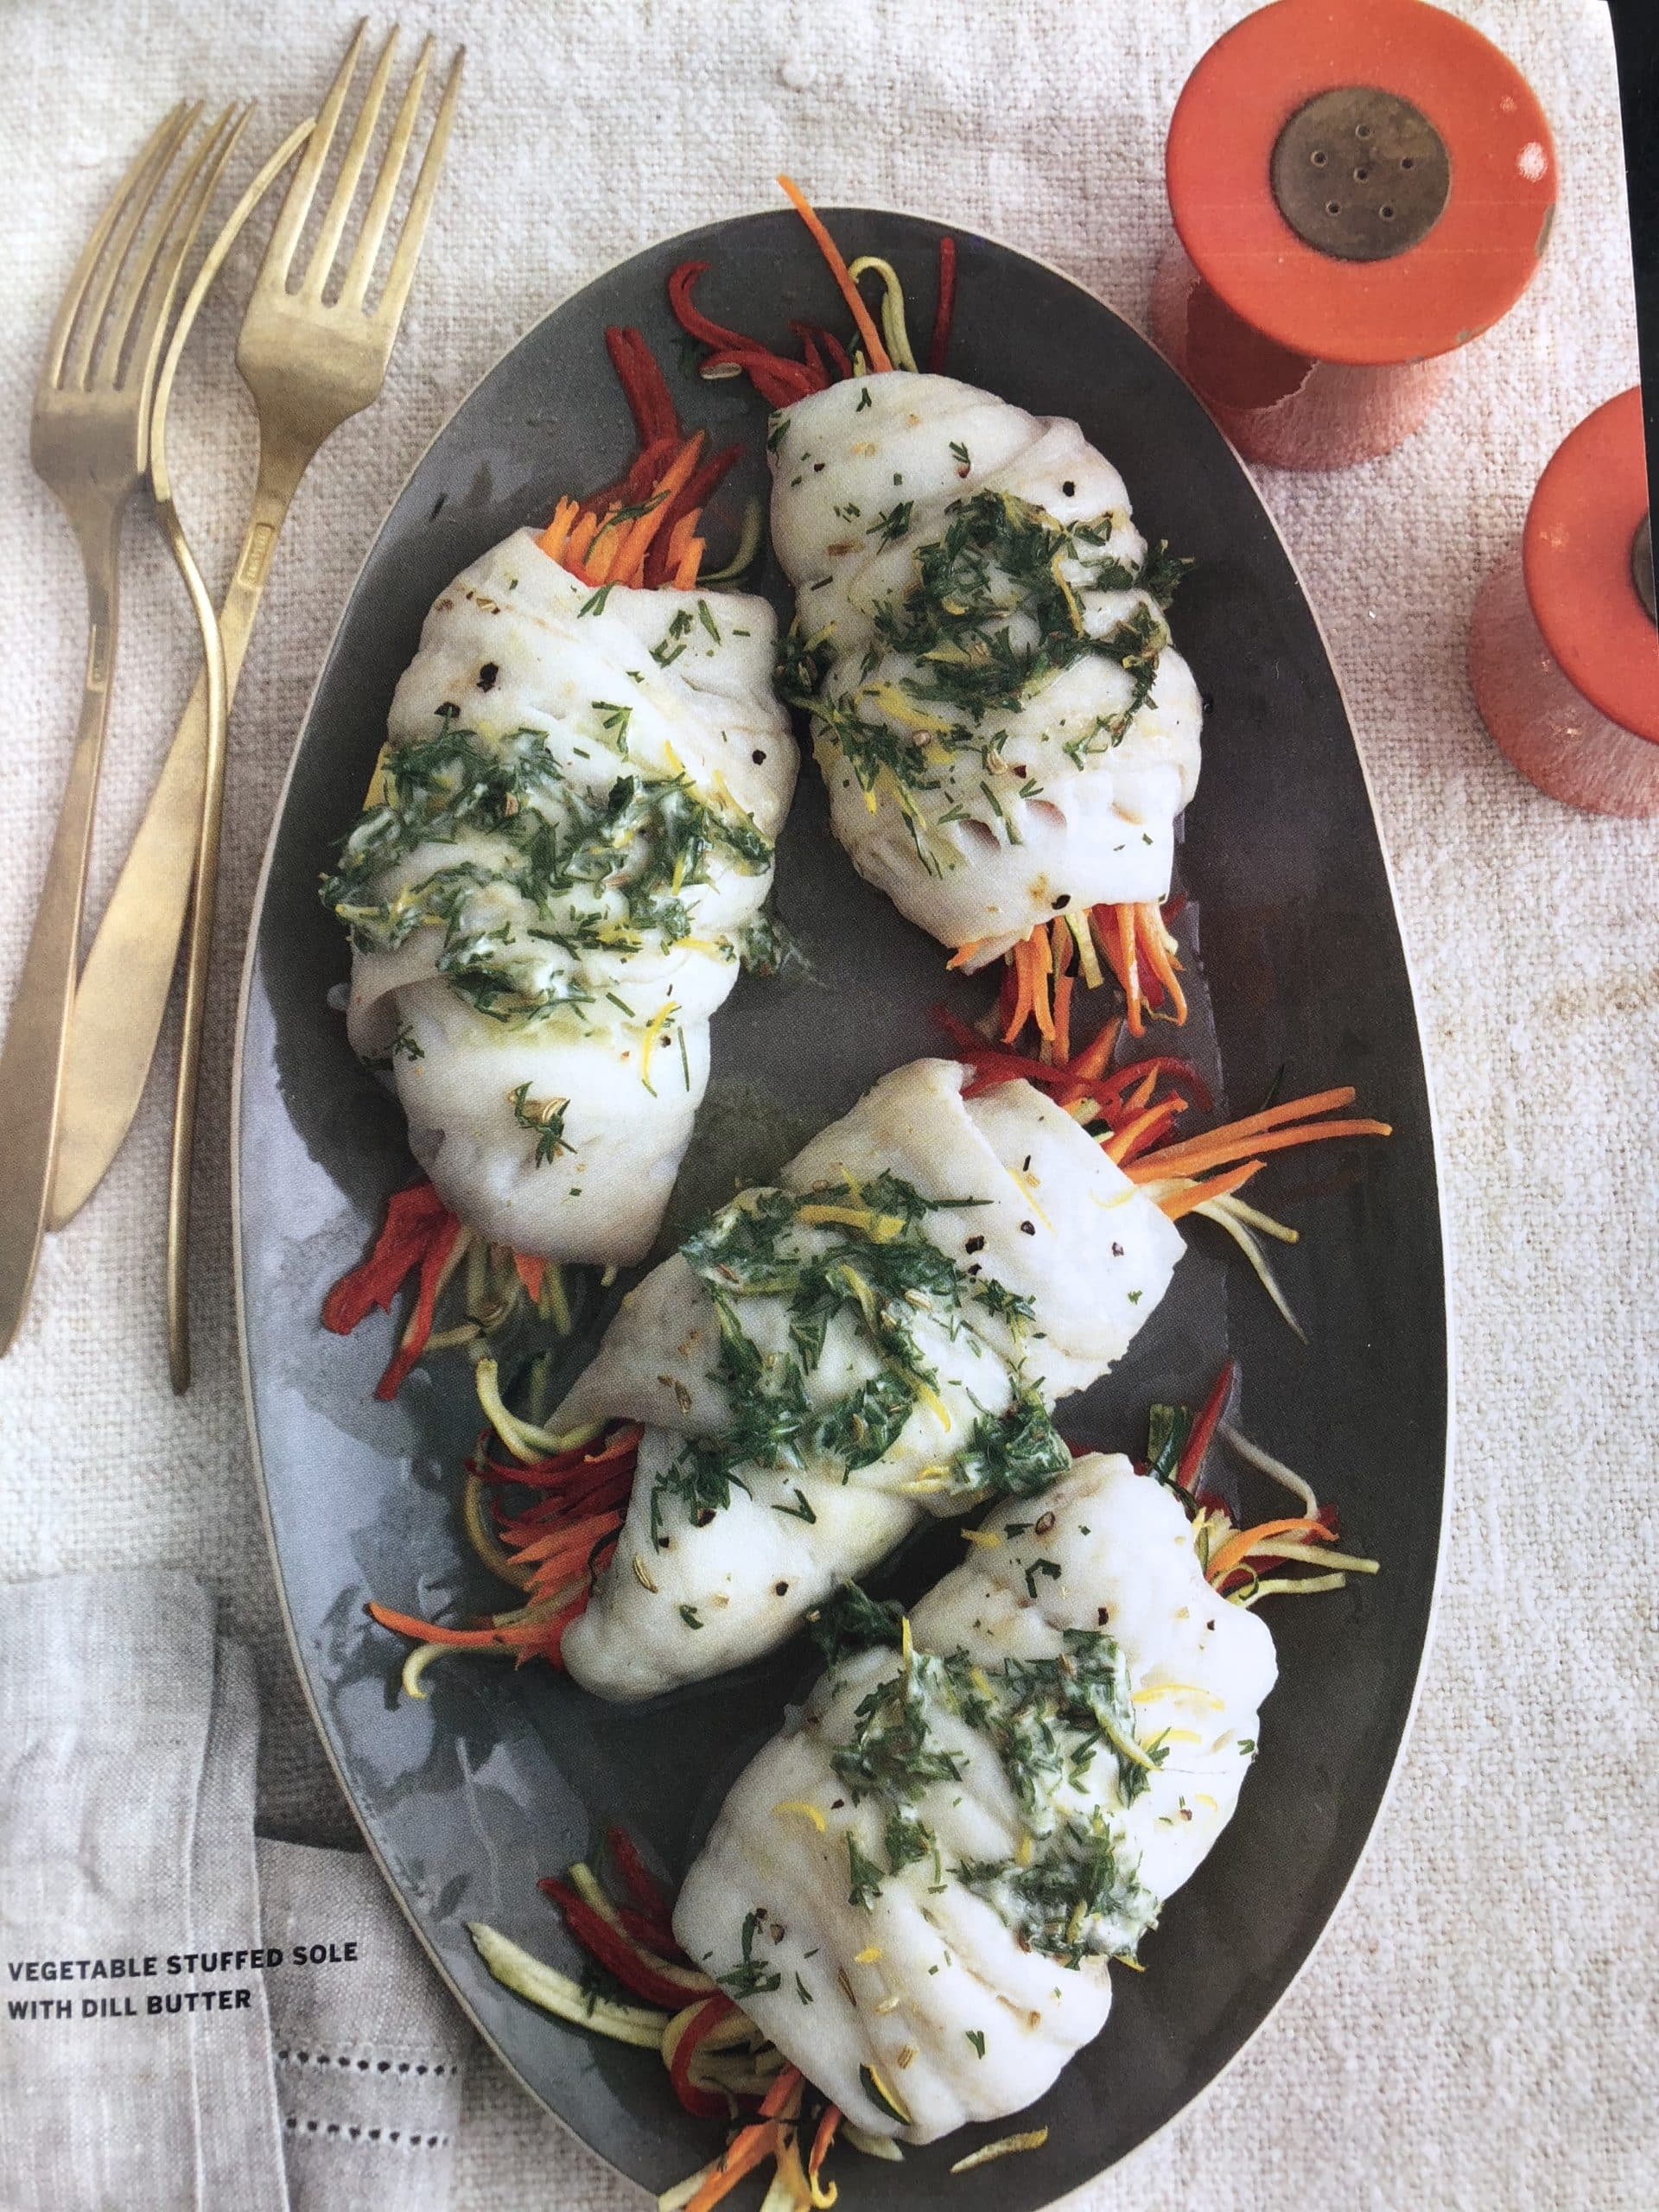 Vegetable Stuffed Sole with Dill Butter